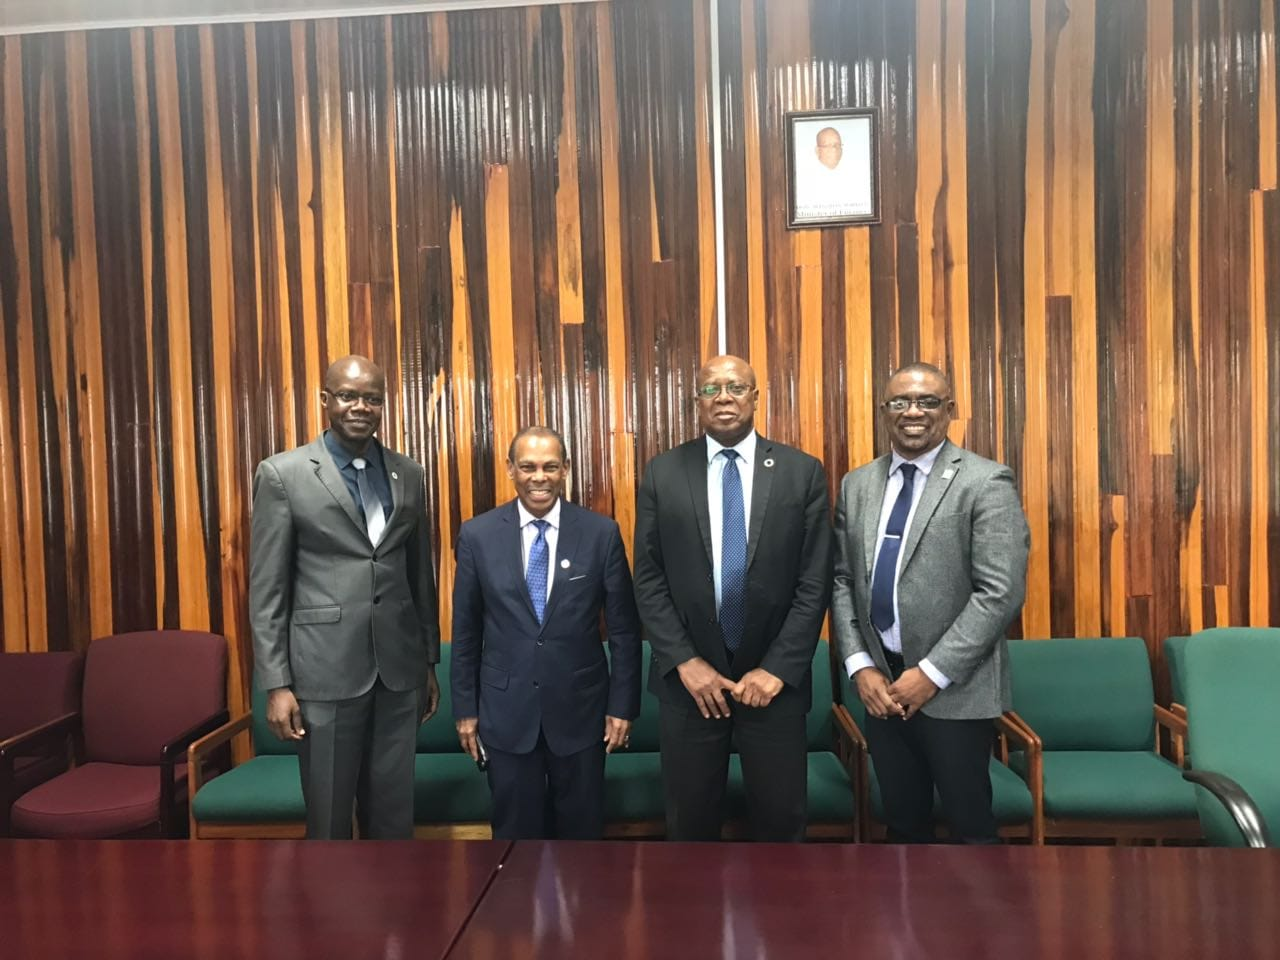 L-R: Dr Martin Oditt, UNAIDS Country Director, Dr Edward Greene PANCAP Advisor, Dr Hector Butts, Finance Secretary Ministry of Finance – Guyana and Mr Dereck Springer Director of PANCAP.